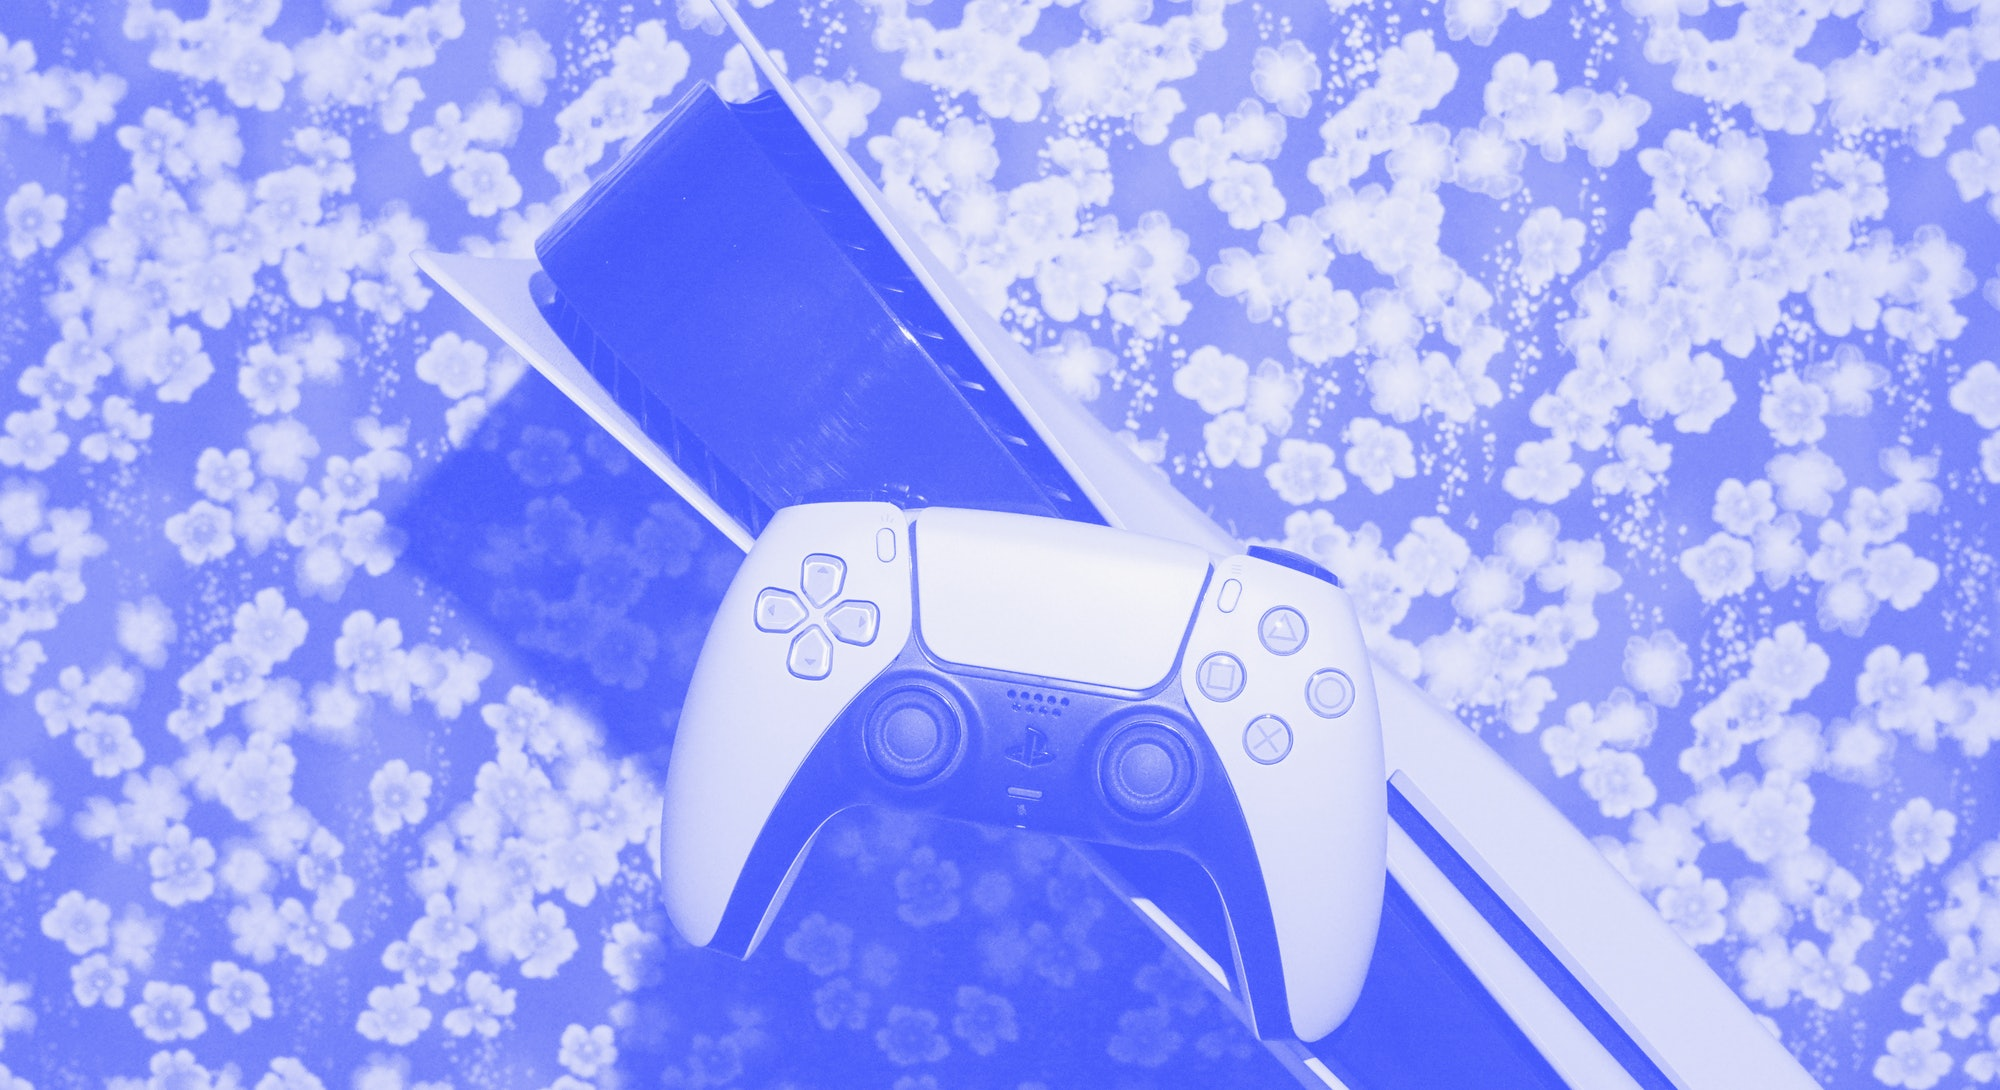 PS5 review: console and DualSense controller